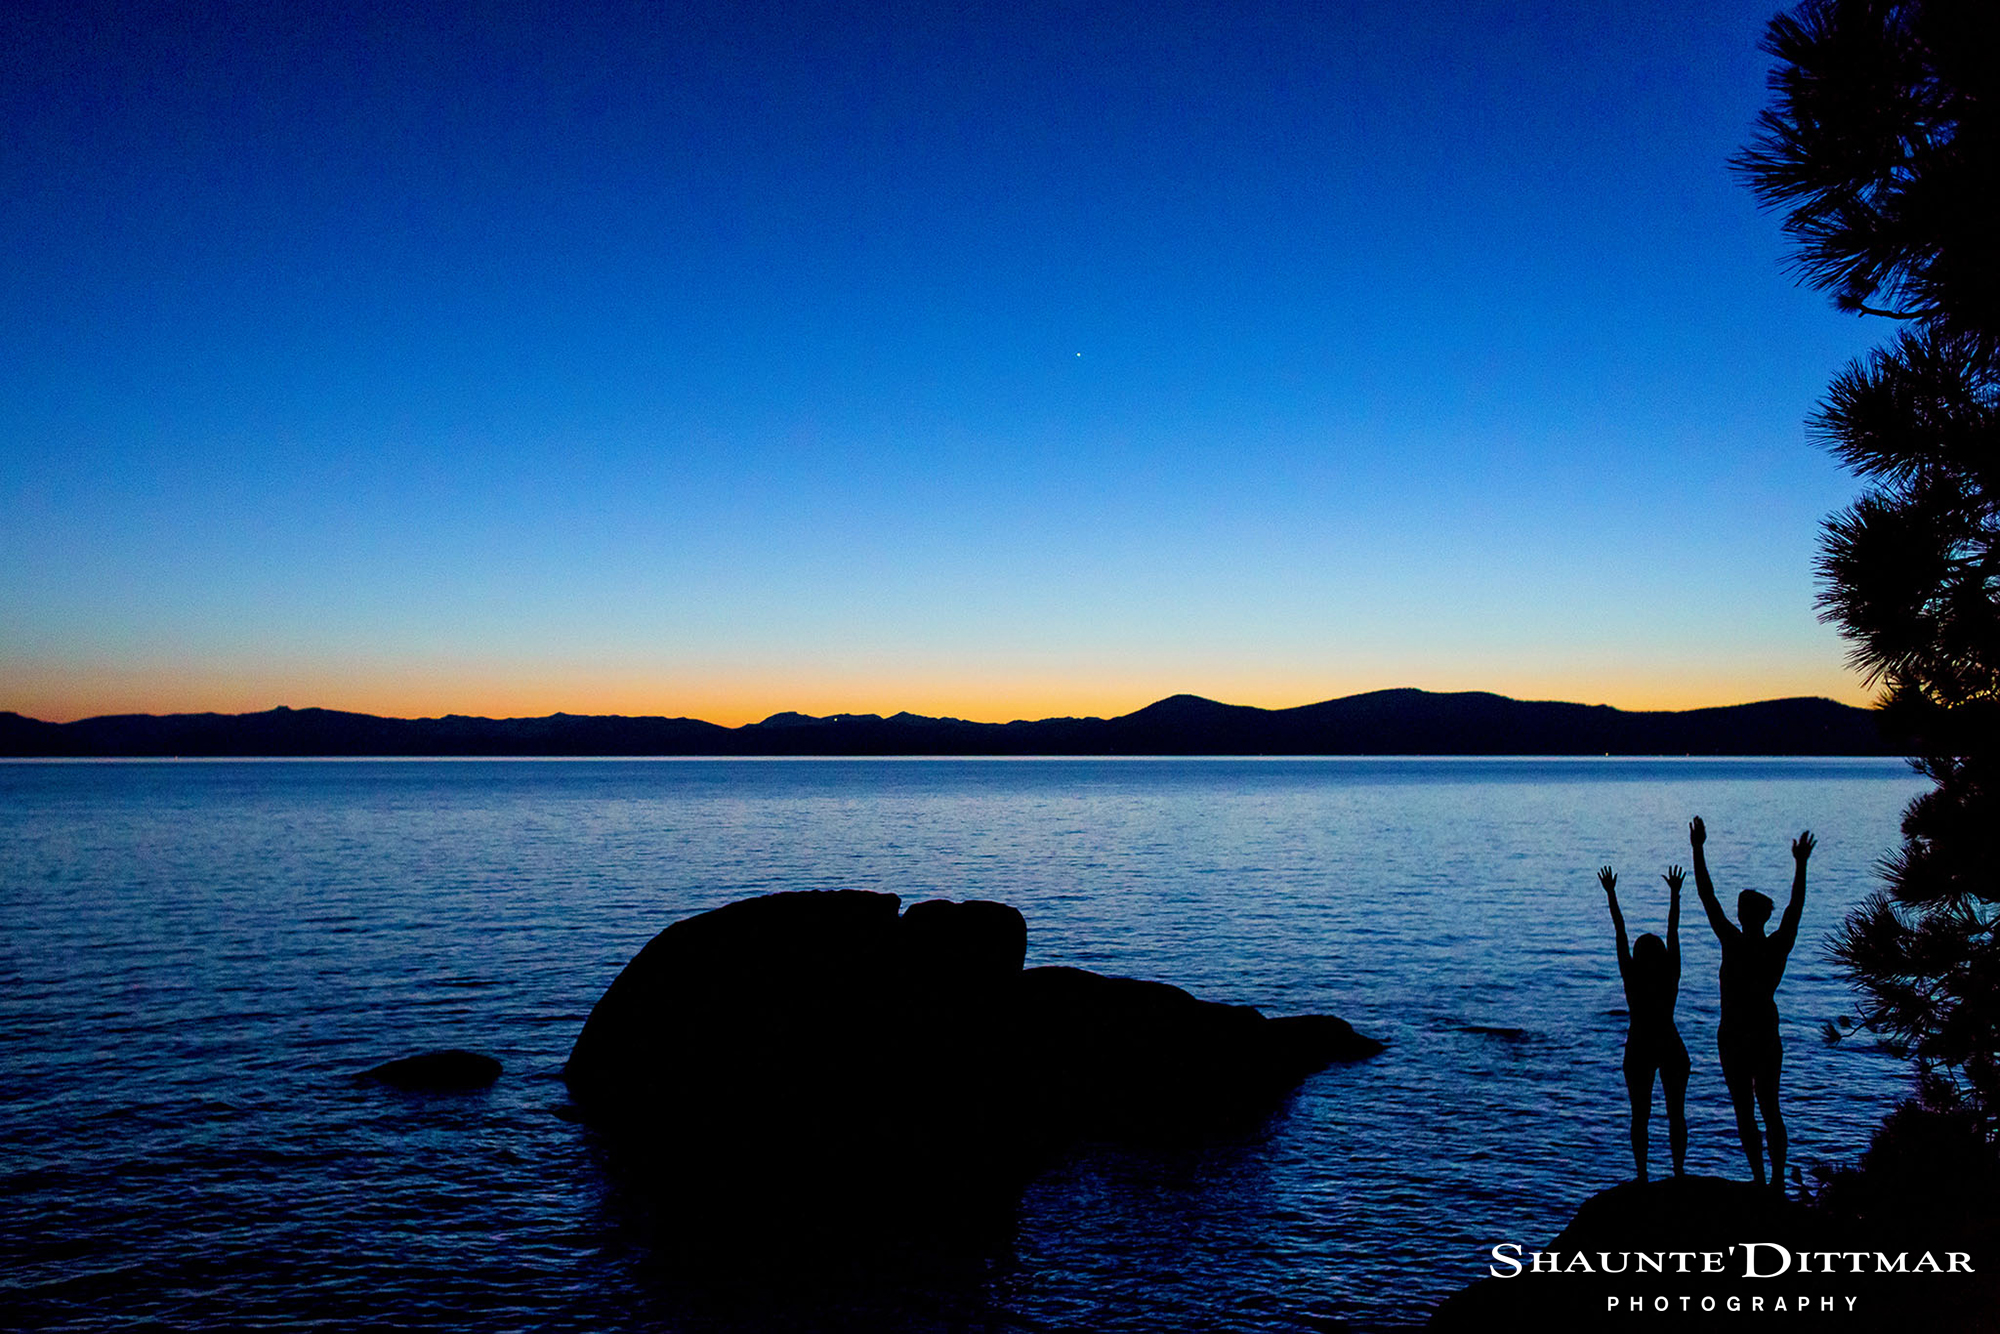 Kim_Daniel_361_Bonzai_Rock_Engagement_Lake_Tahoe_Shaunte_Dittmar_Photography.jpg